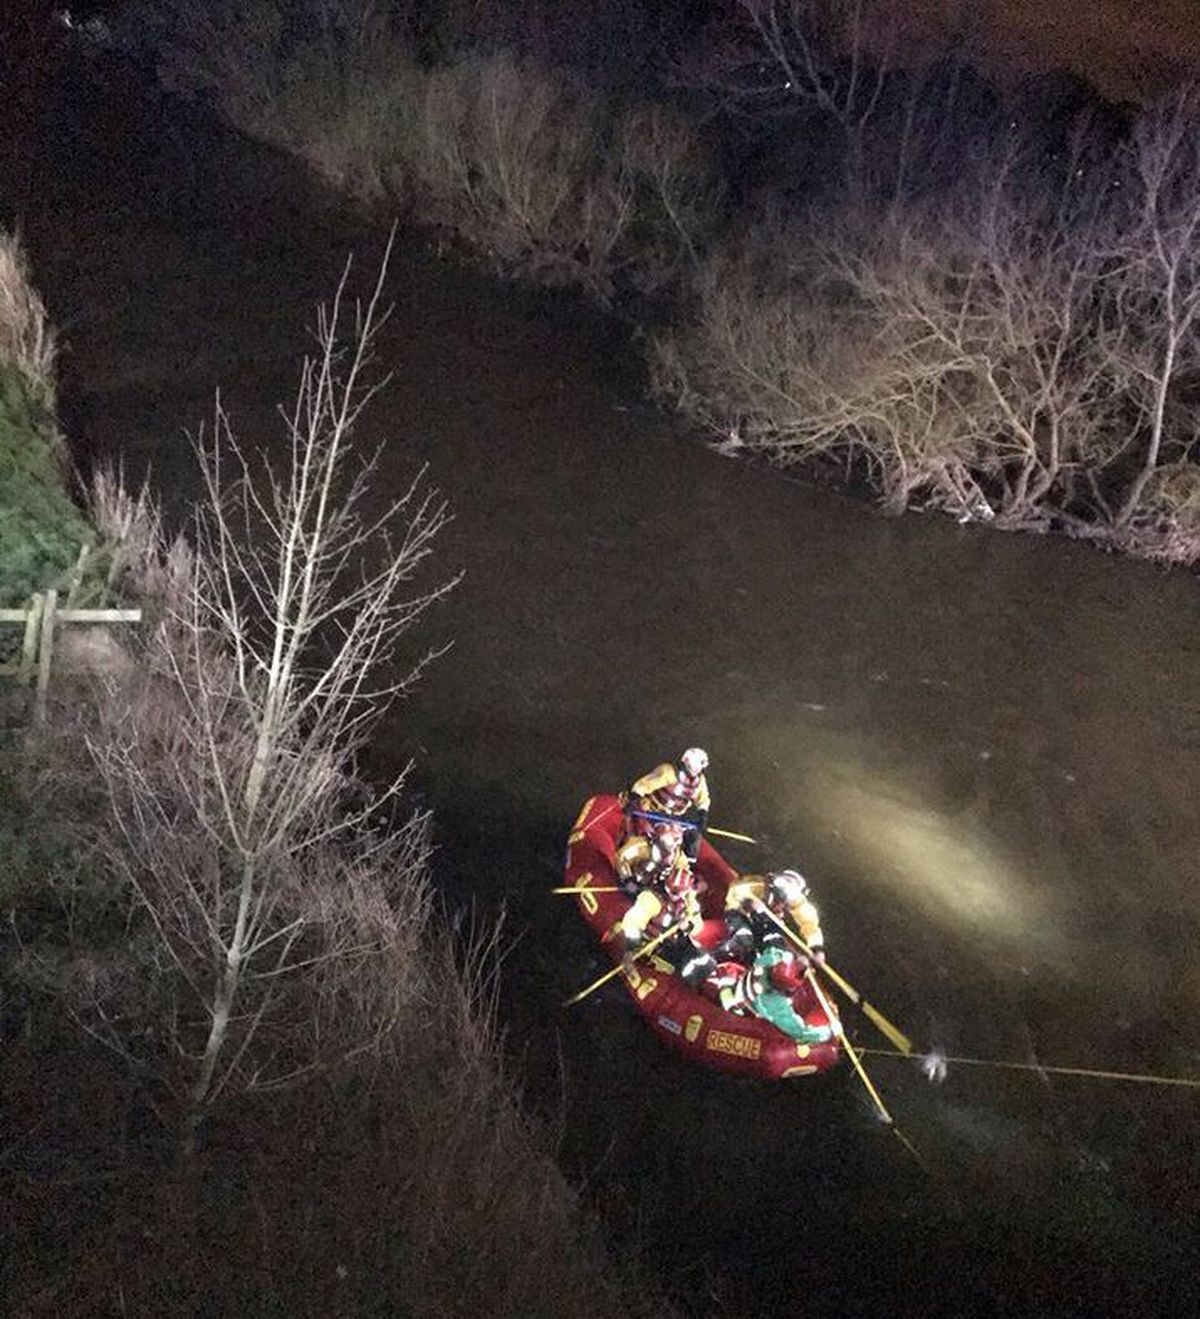 A search of the water, off the A51 in Rugeley, was carried out using fire and rescue boats. Photo: Cannock Police